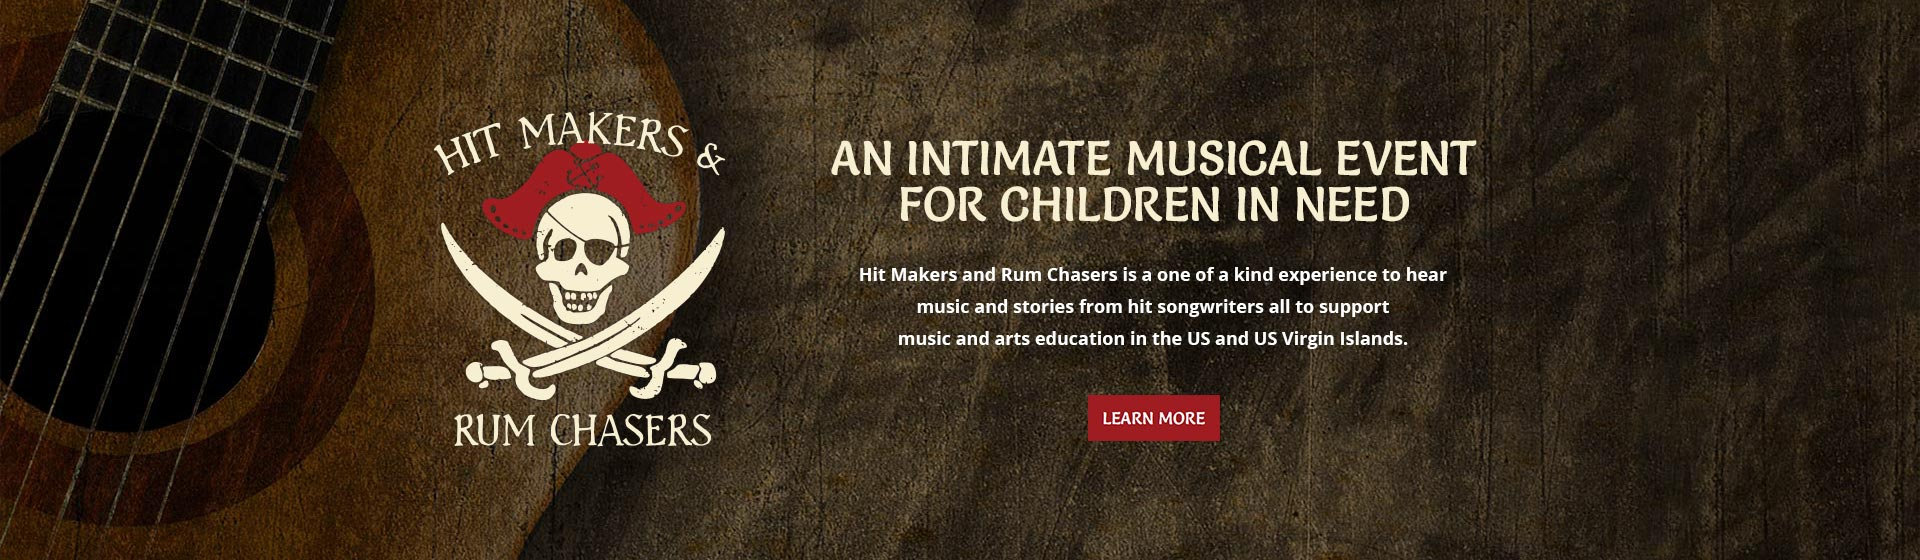 Hit Makers and Rum Chasers is a one of a kind experience to hear music and stories from hit songwriters all to support music and arts education in the US and US Virgin Islands.